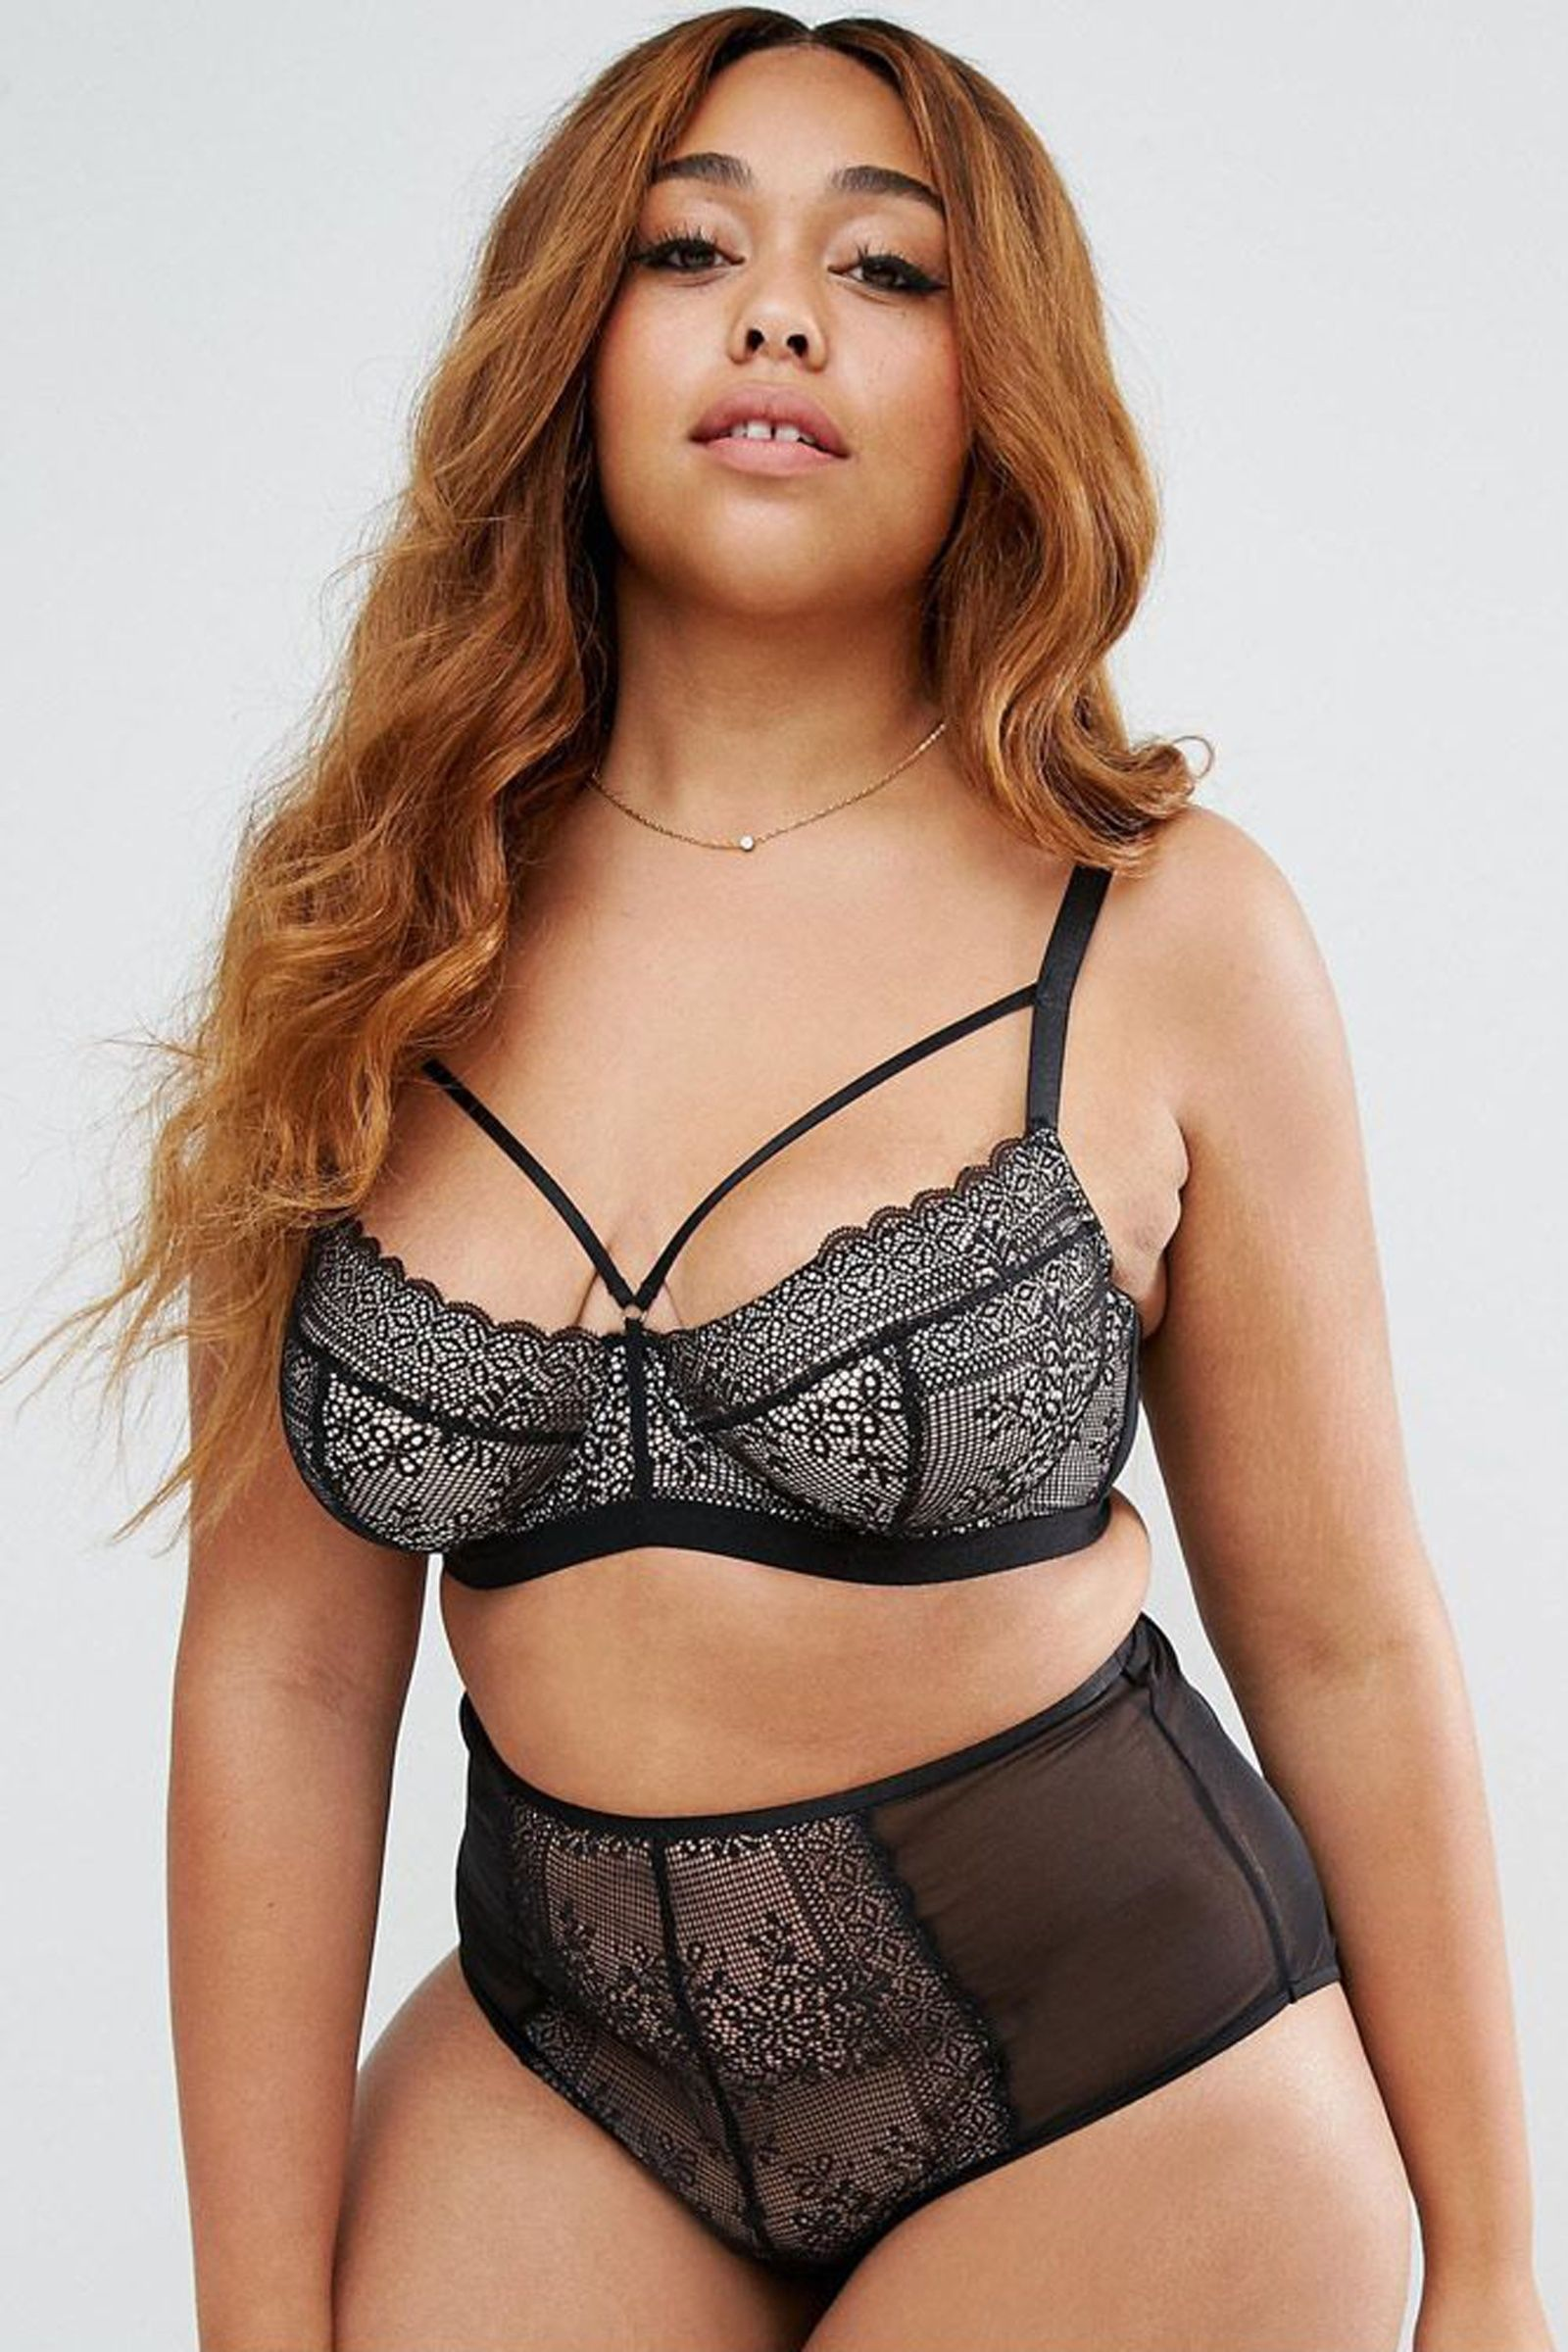 Lingerie Gifts for 25 and Under